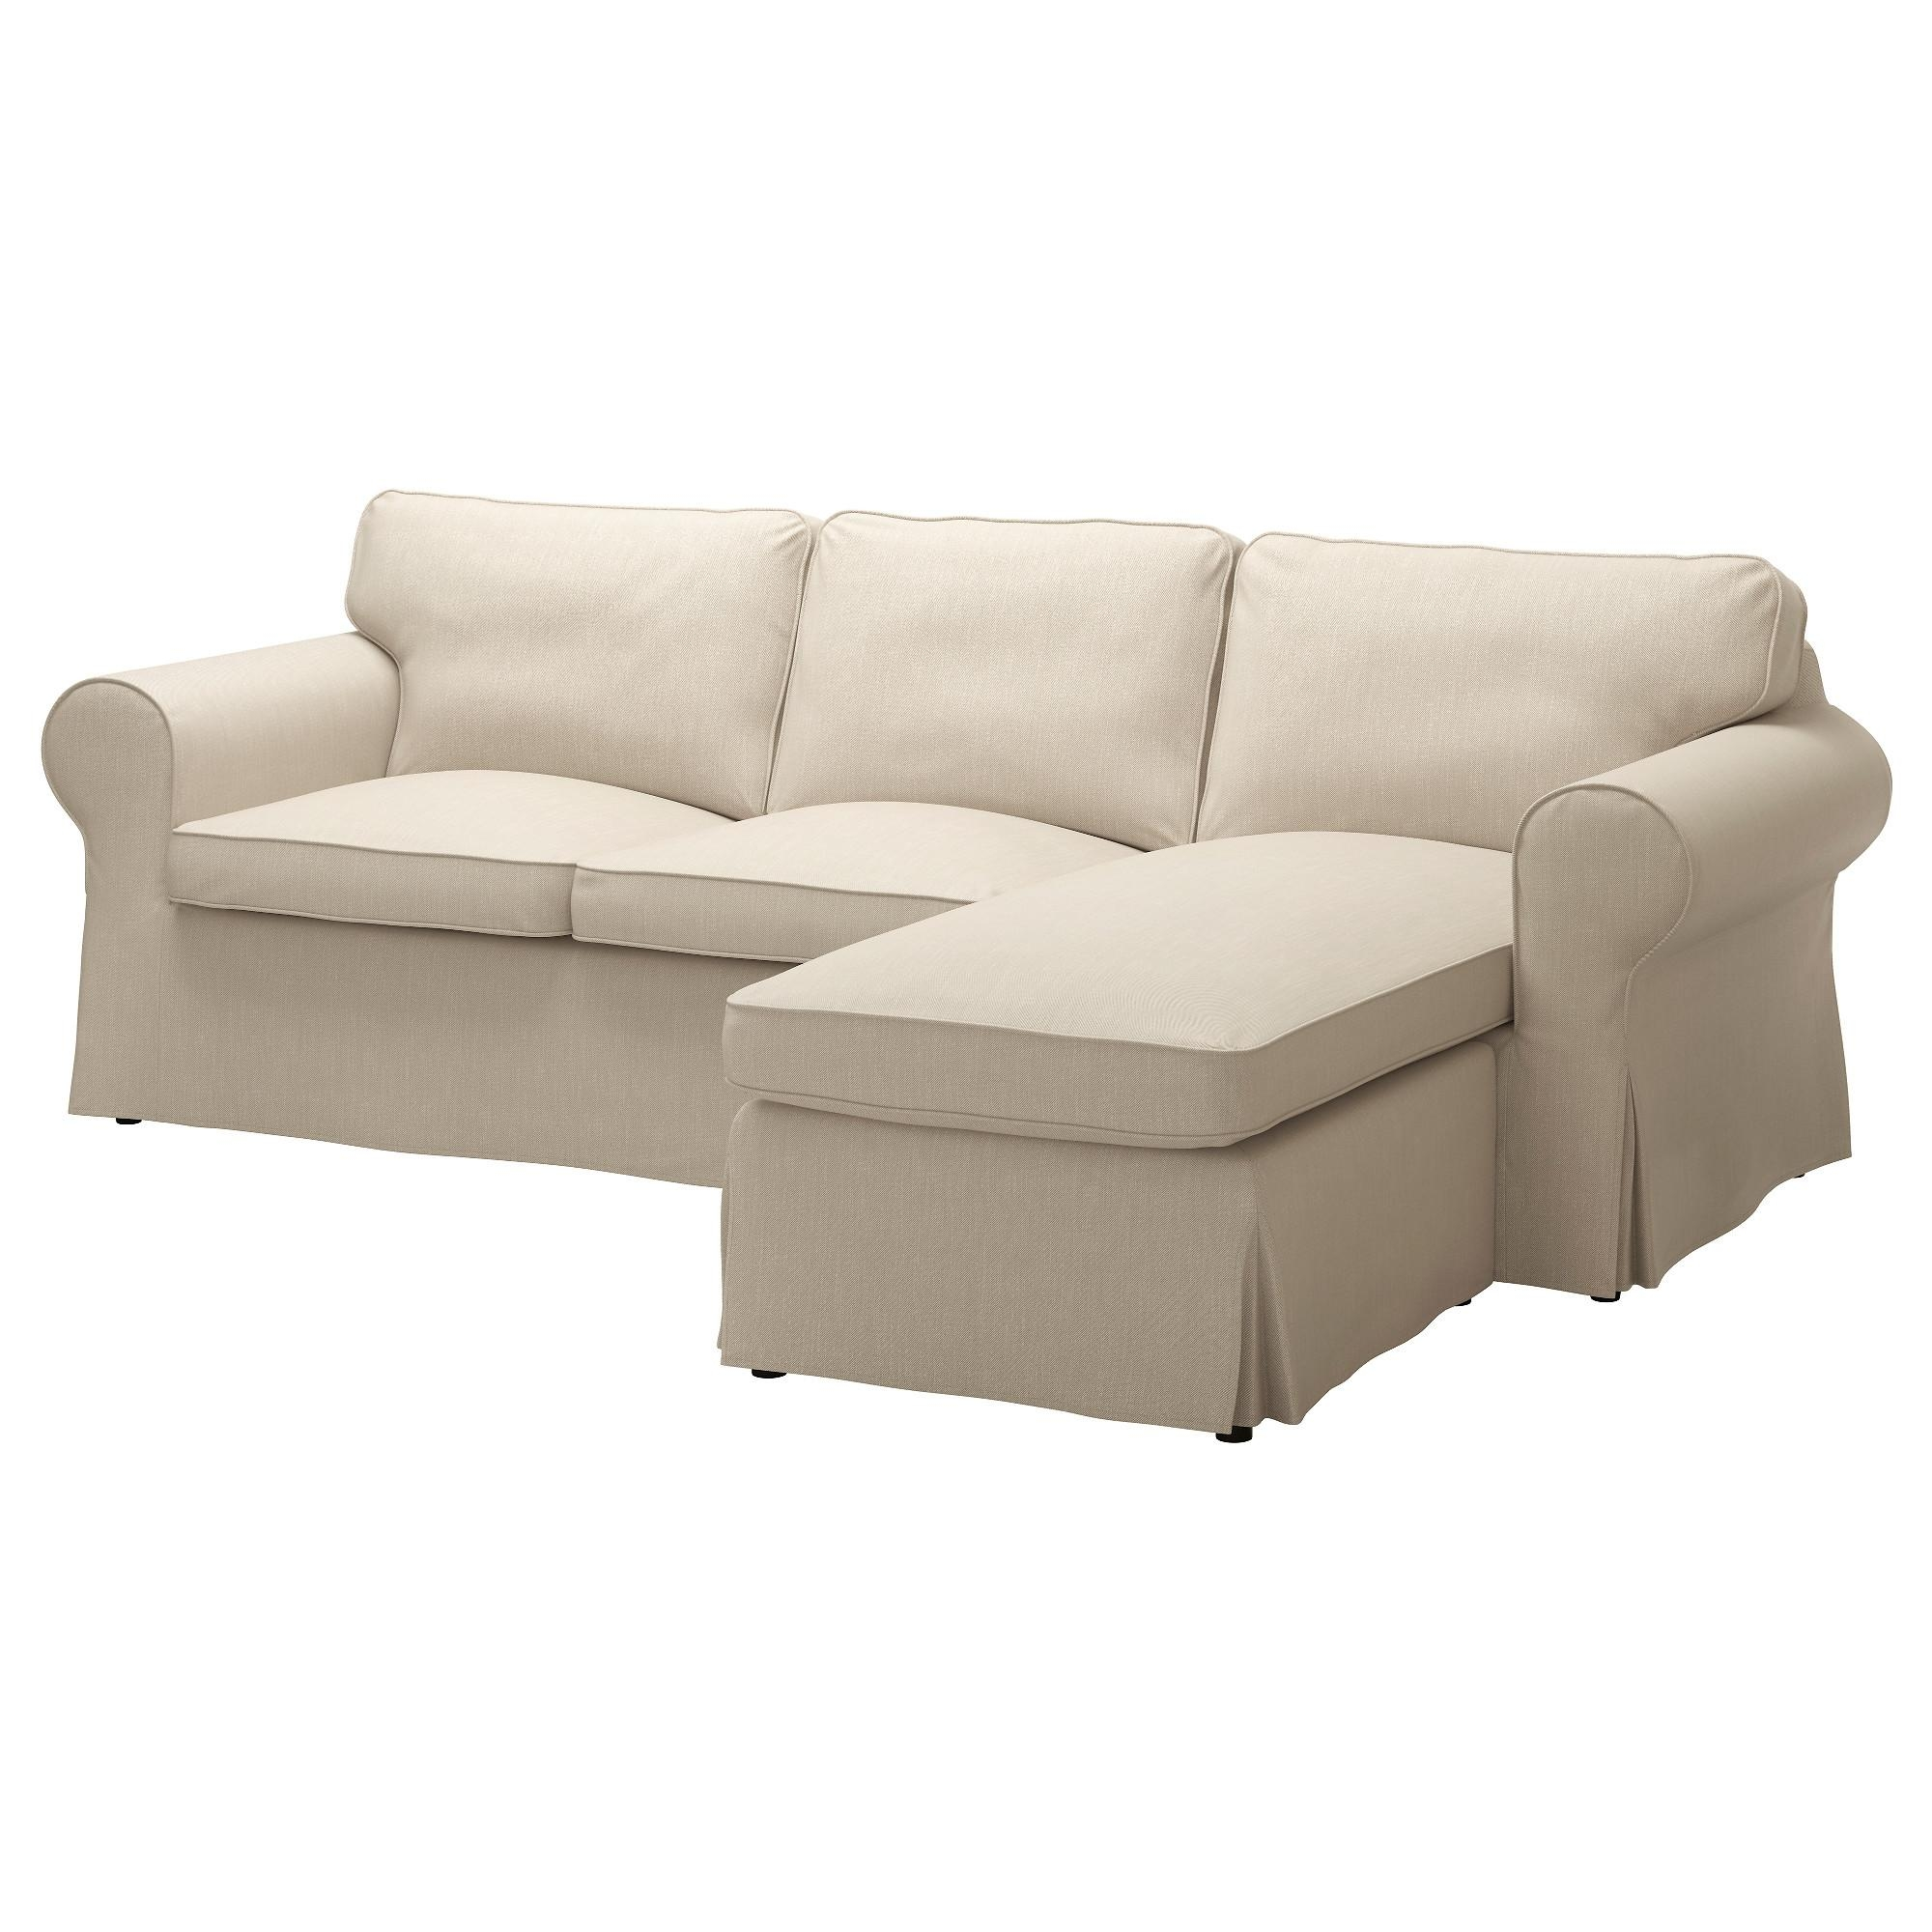 20 photos ikea chaise lounge sofa sofa ideas for Ikea divan